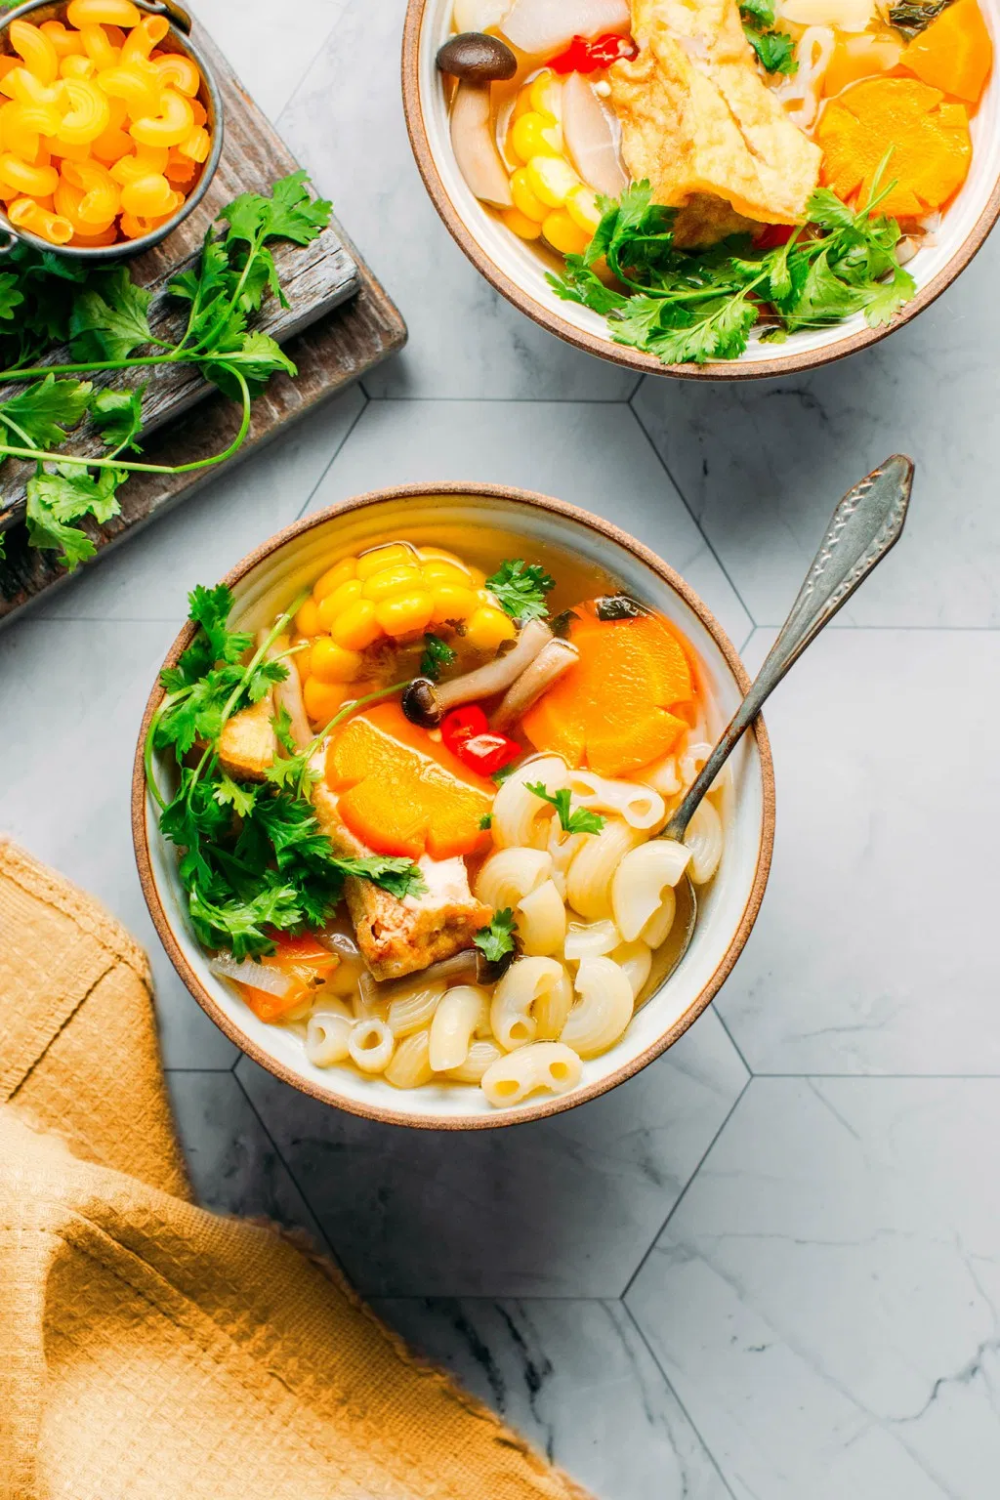 Vietnamese Inspired Soup That Comes With Sauteed Mushrooms Carrots Tofu And Cilantro Rich Healthy And So Flavor In 2020 Vegetarian Soup Veggie Soup Soup And Salad